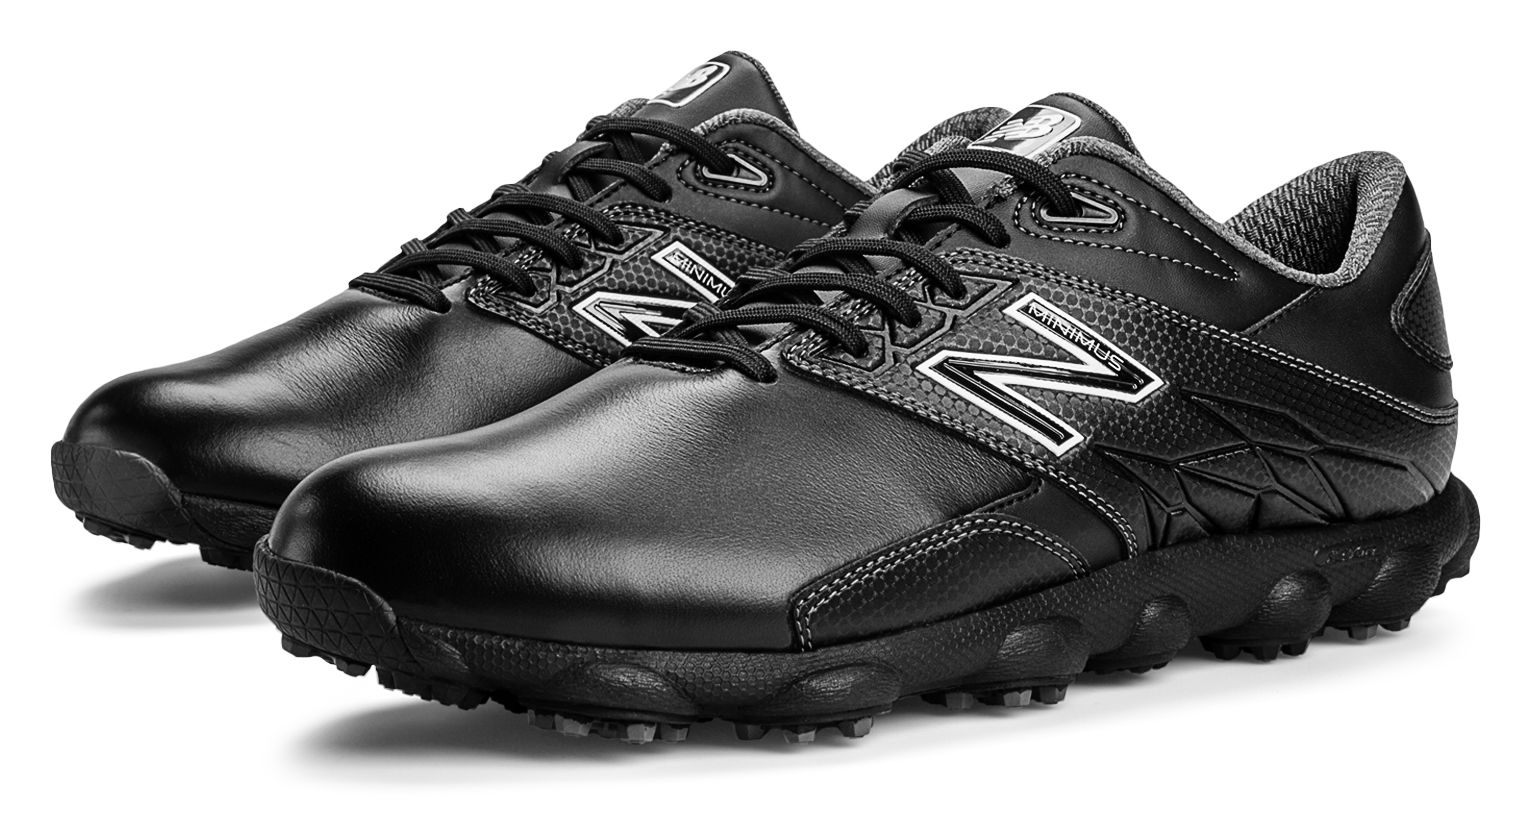 New Balance Mens Minimus Lx Golf Shoes Black